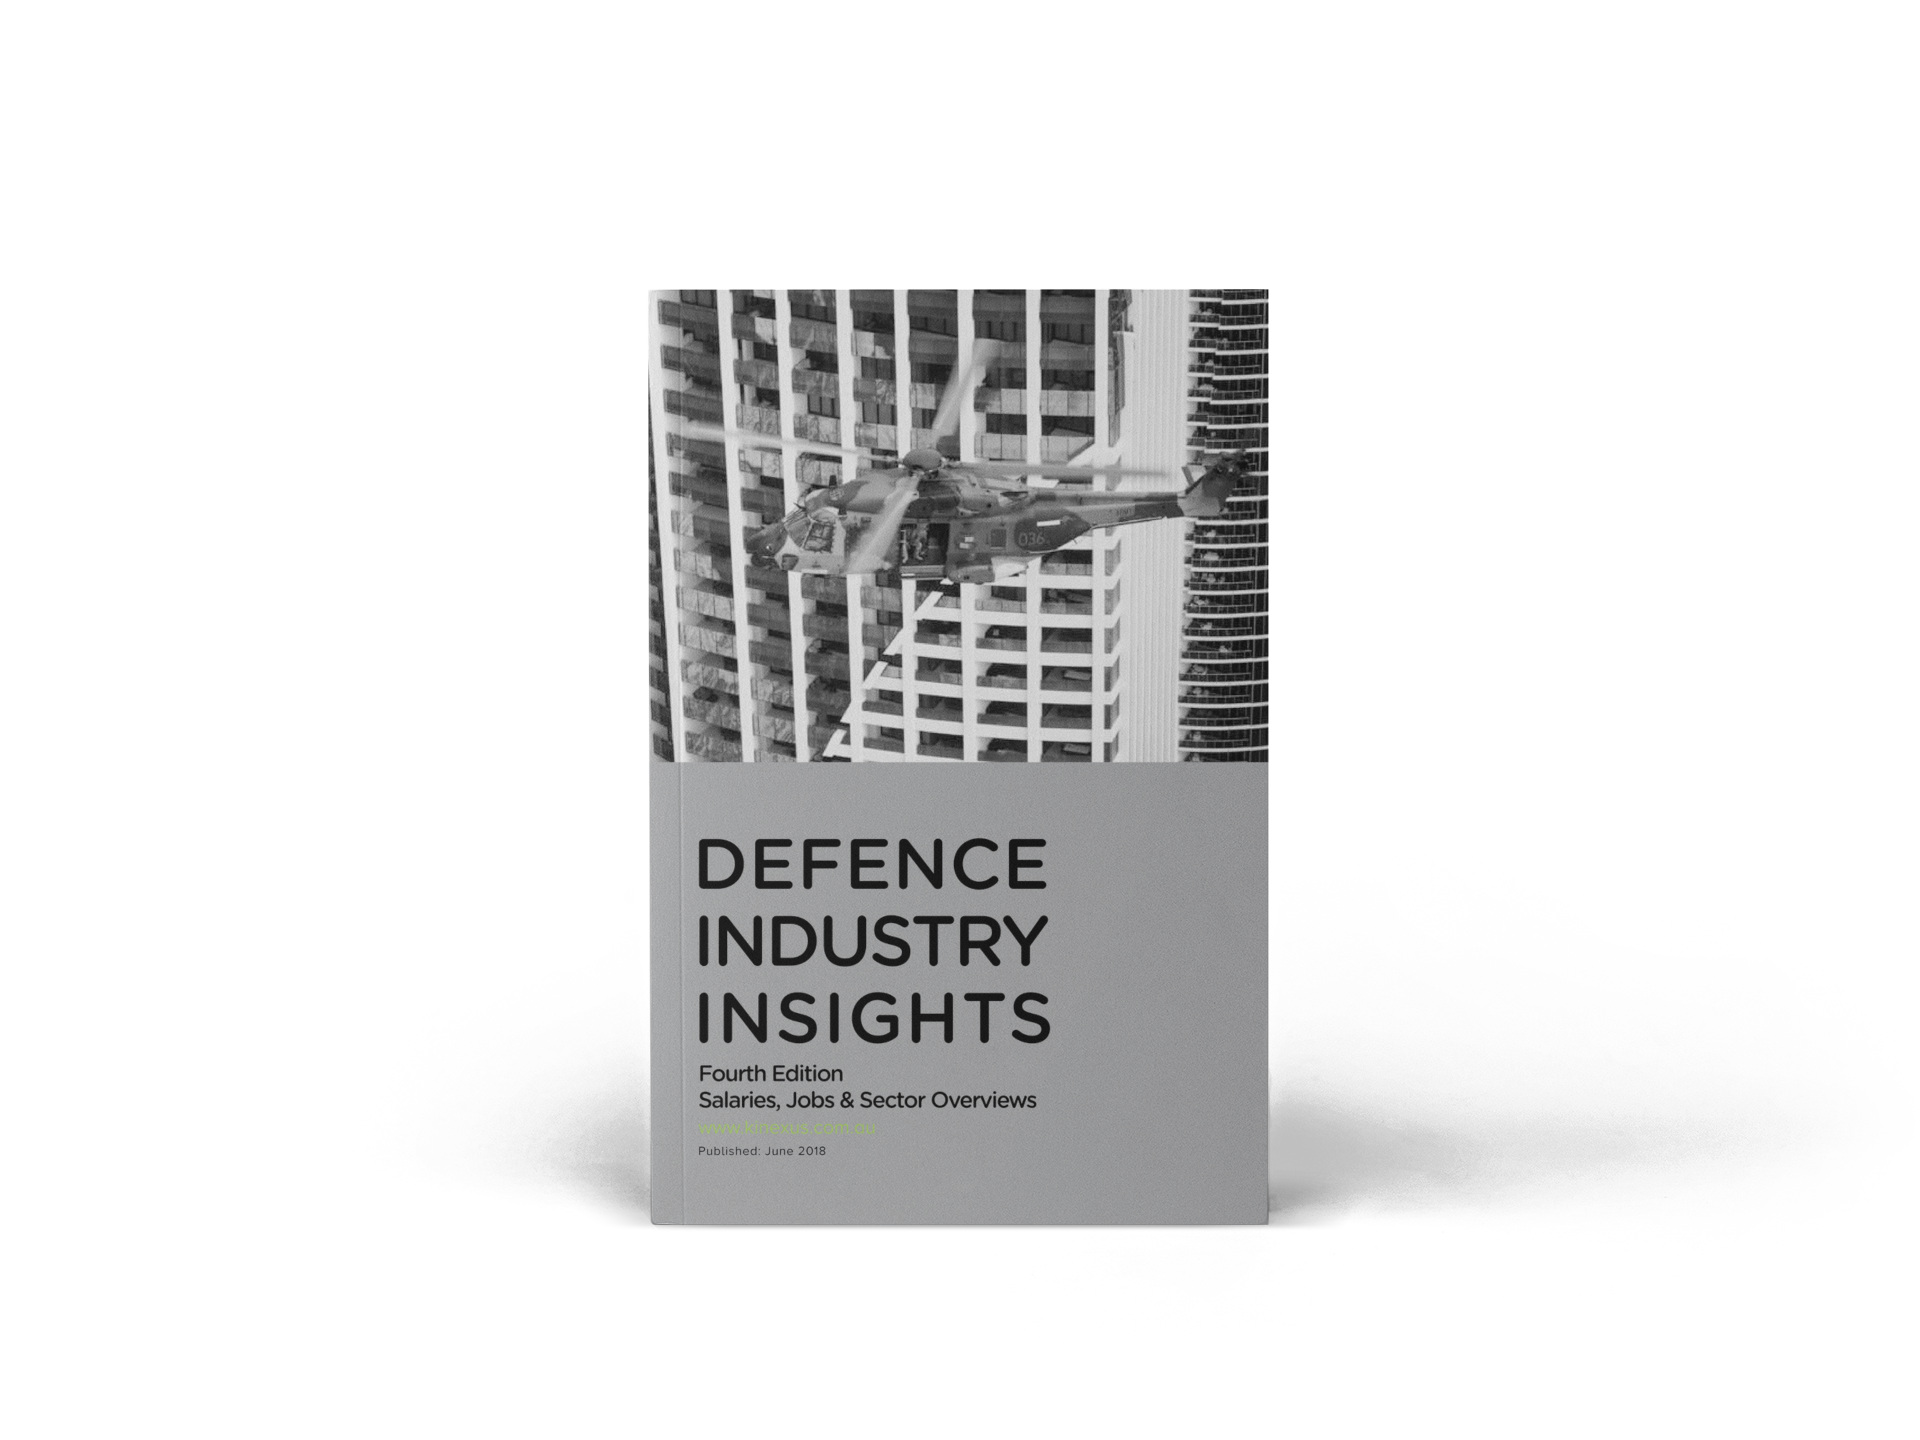 Defence Industry Insights - 4th Edition